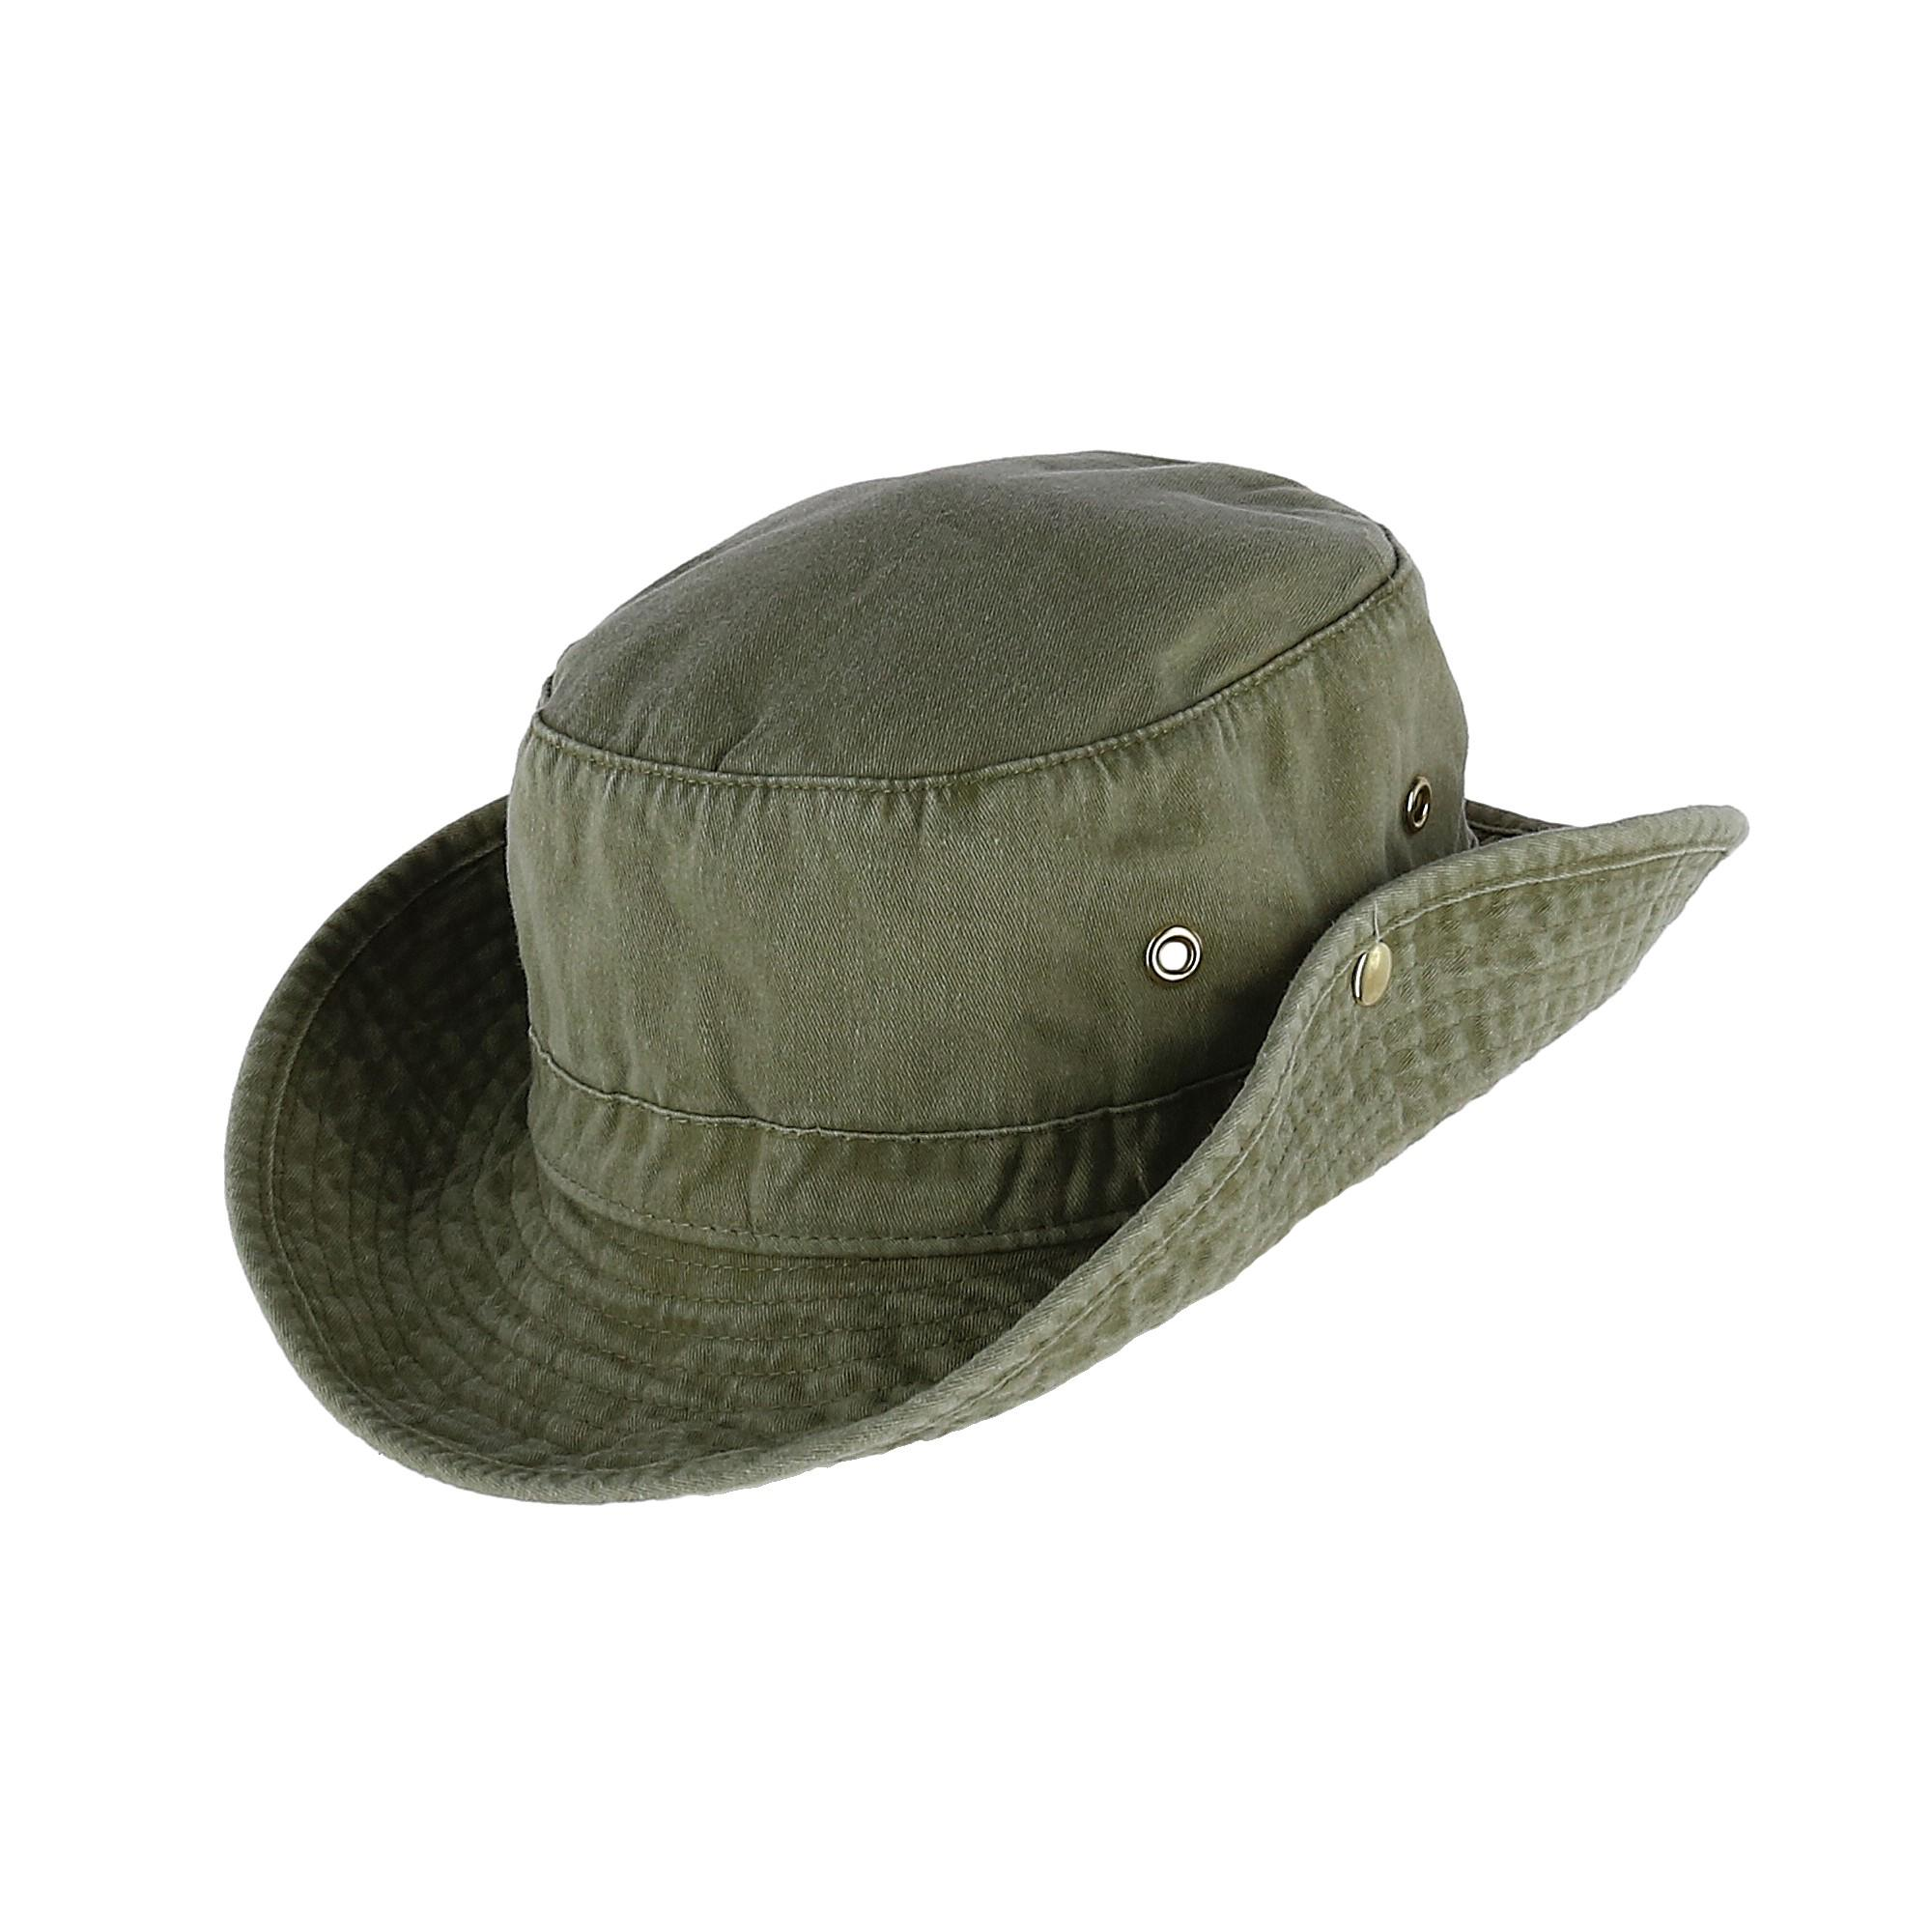 2a1b28e287777 New Broner Men s Garment Washed Bucket Hat with Snaps and Chin Cord ...